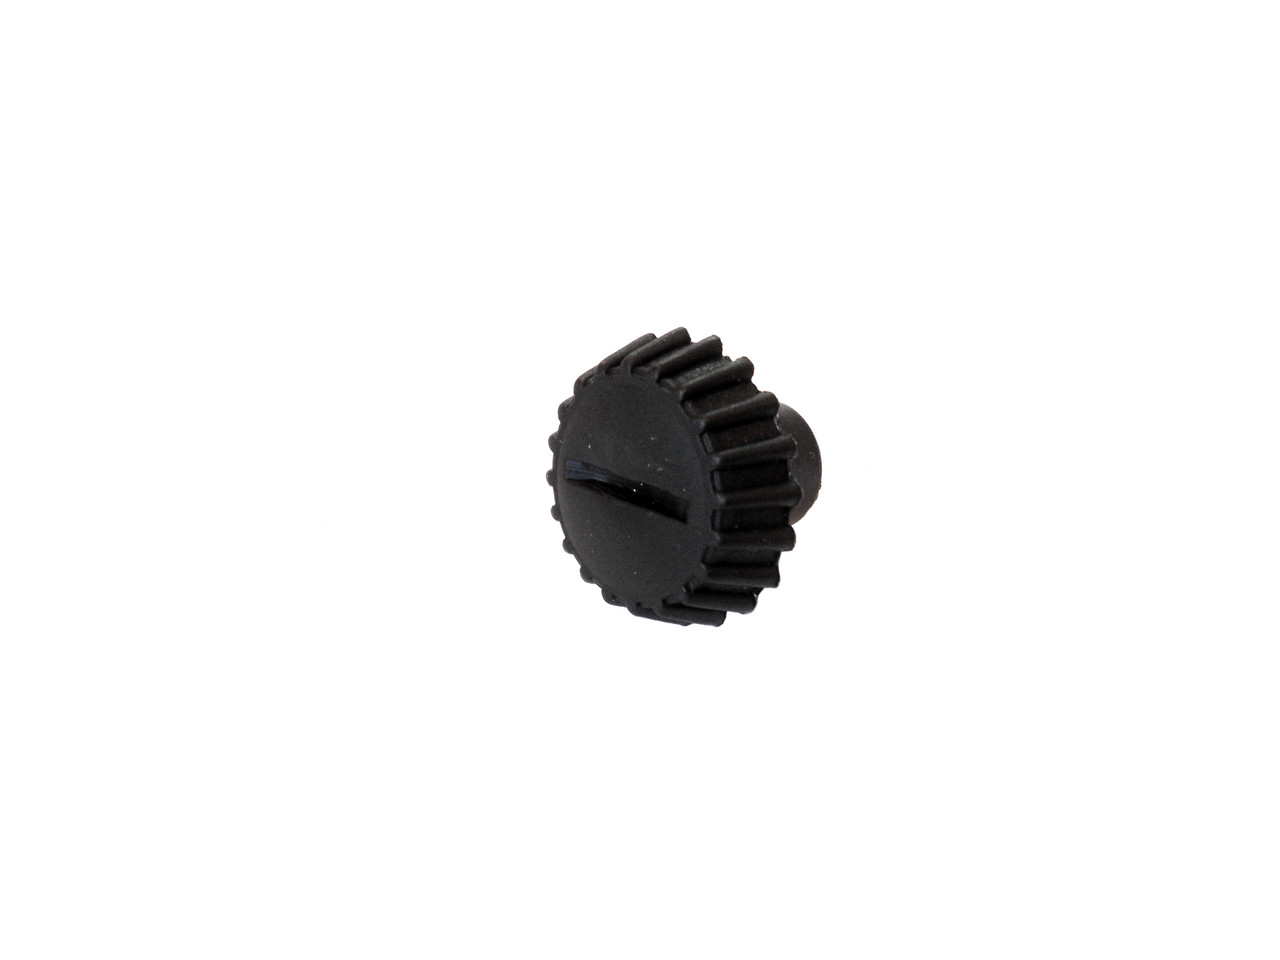 Motobecane Plastic Tool Box Cover Nut, M6 Thread - Black